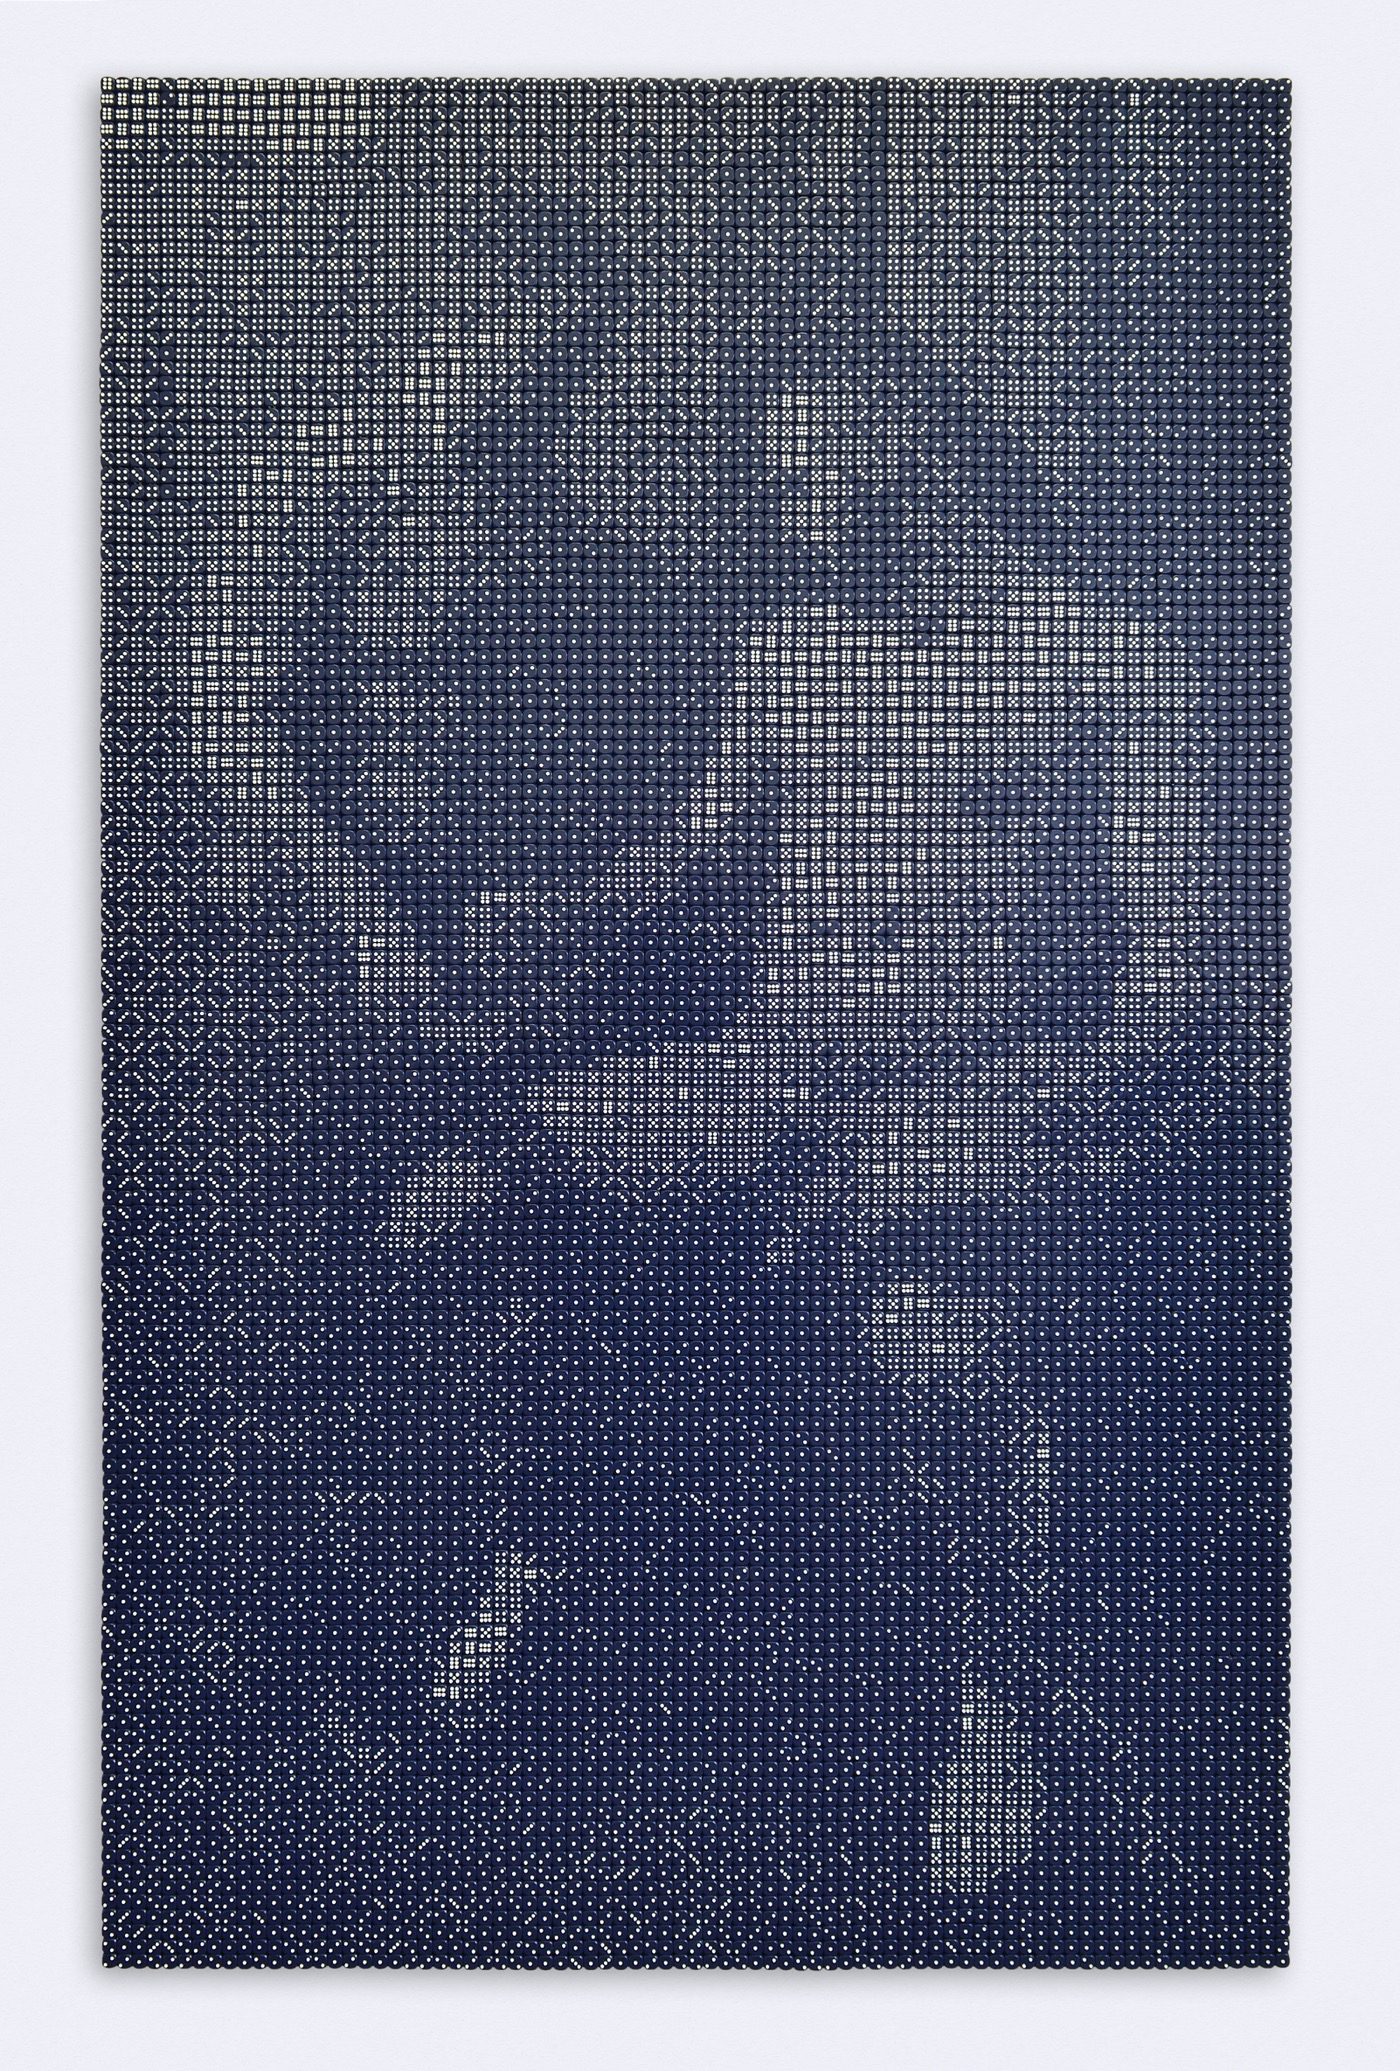 Pierre Fouché. Simon & Pieter. 2018. Acrylic die on laminated aluminium. 200 x 125cm. [Based on a photograph by Christoff van Wyk, with kind permission]